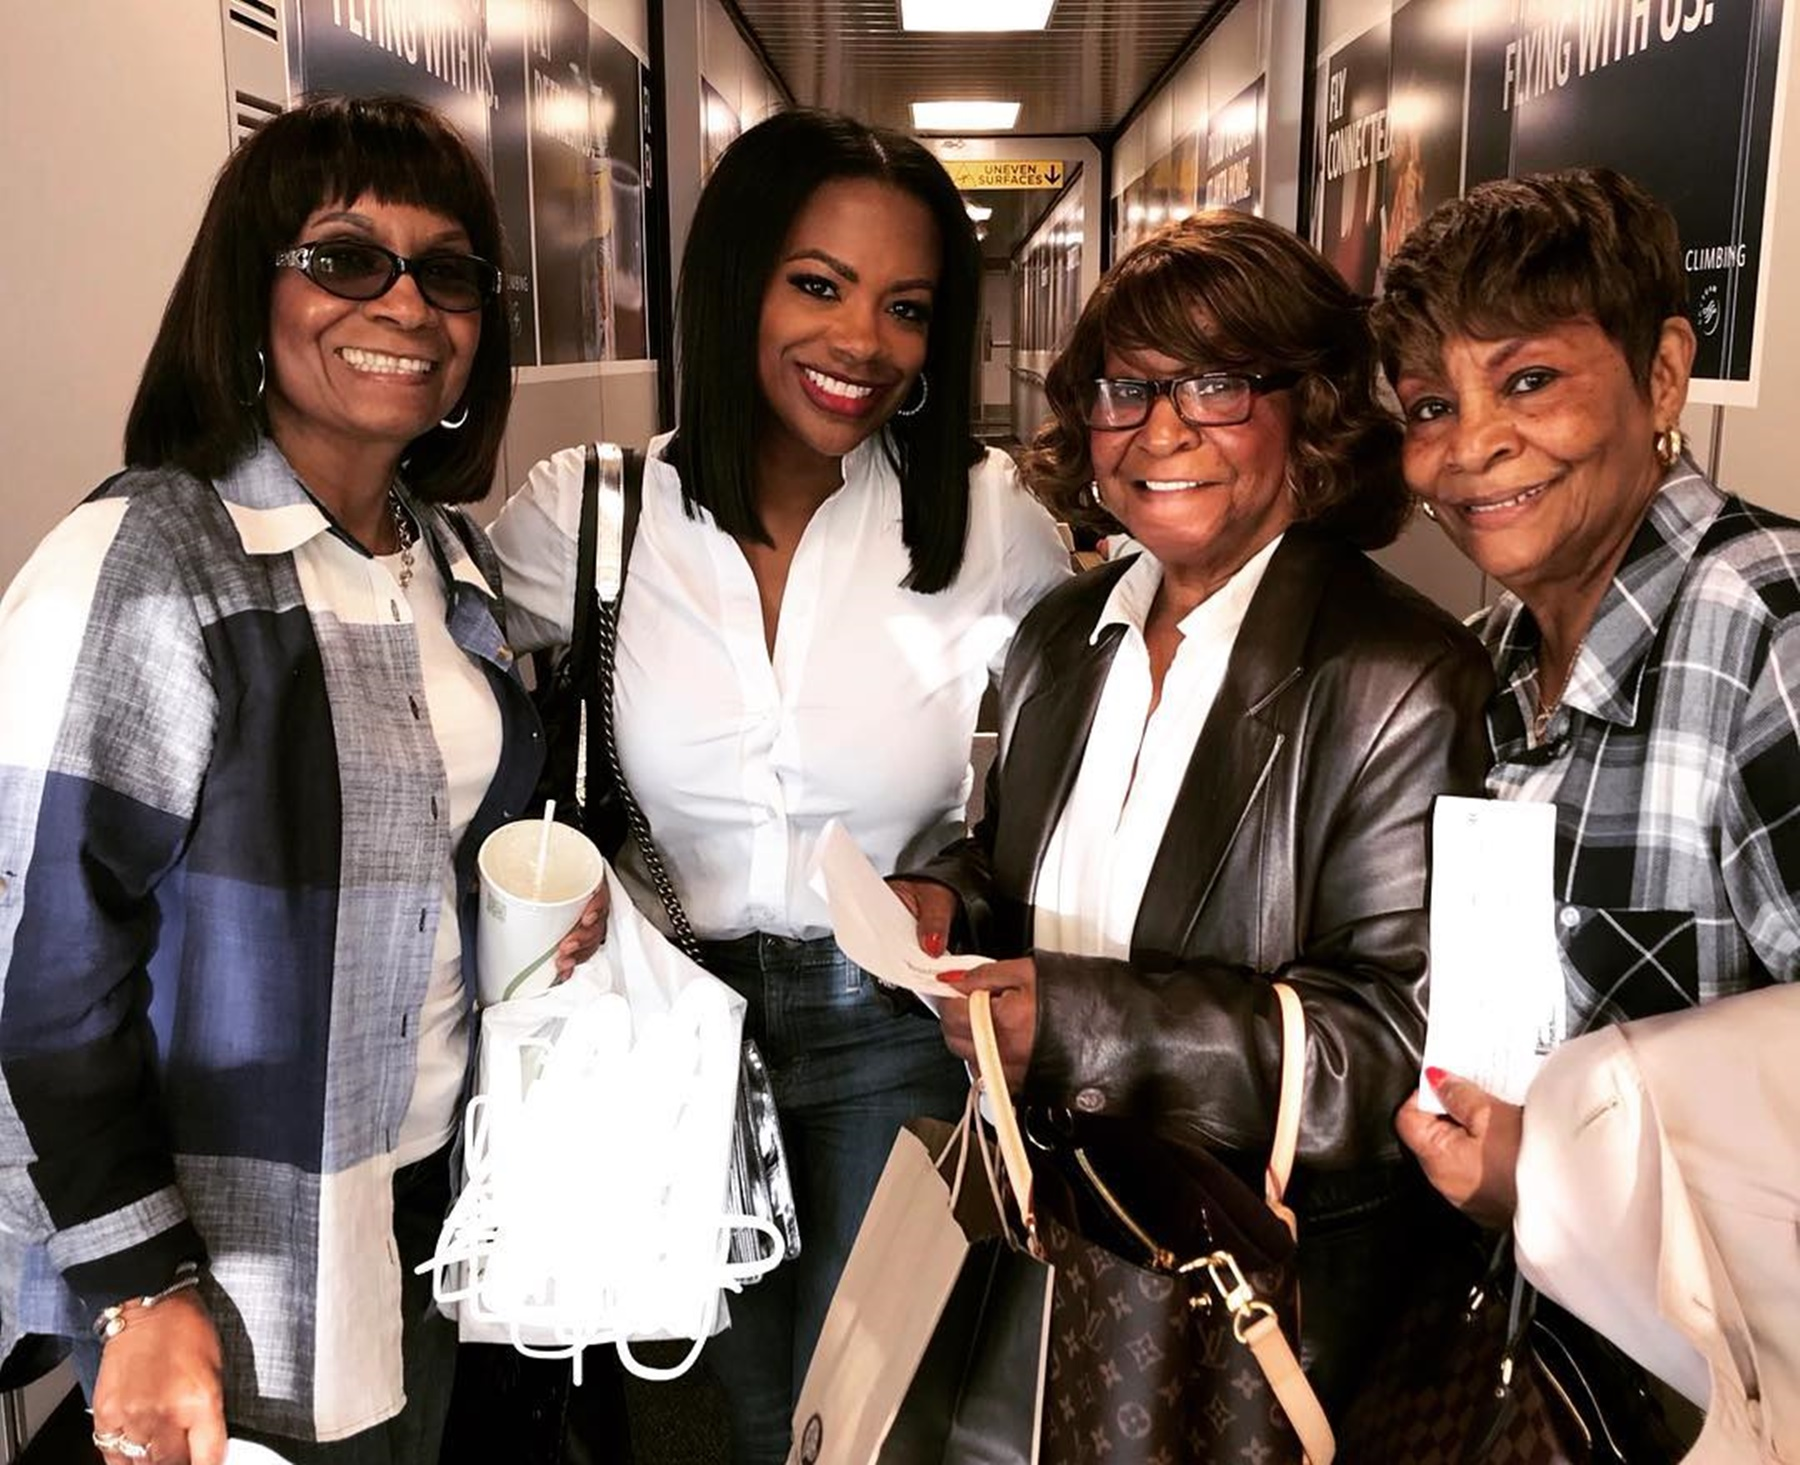 kandi-burruss-shows-her-weight-loss-in-skimpy-outfit-picture-as-she-introduces-mama-joyce-aunt-nora-and-aunt-berthas-cooking-to-wider-audience